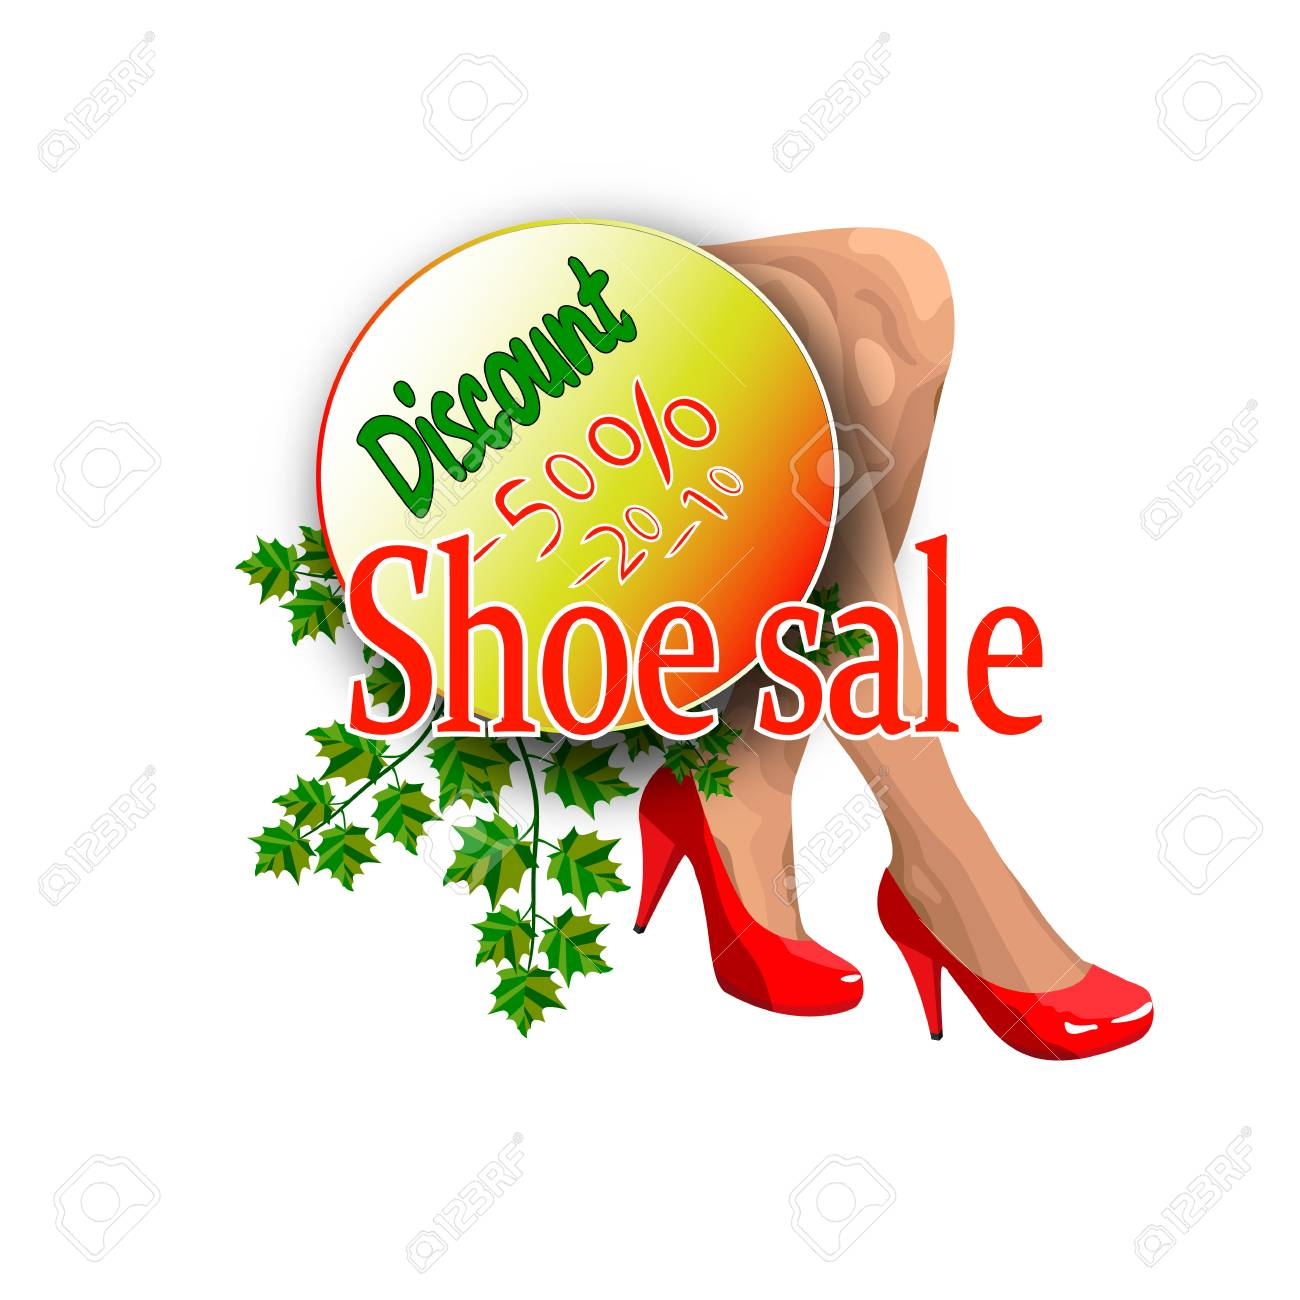 Banner For Sales Of A Shoe Store